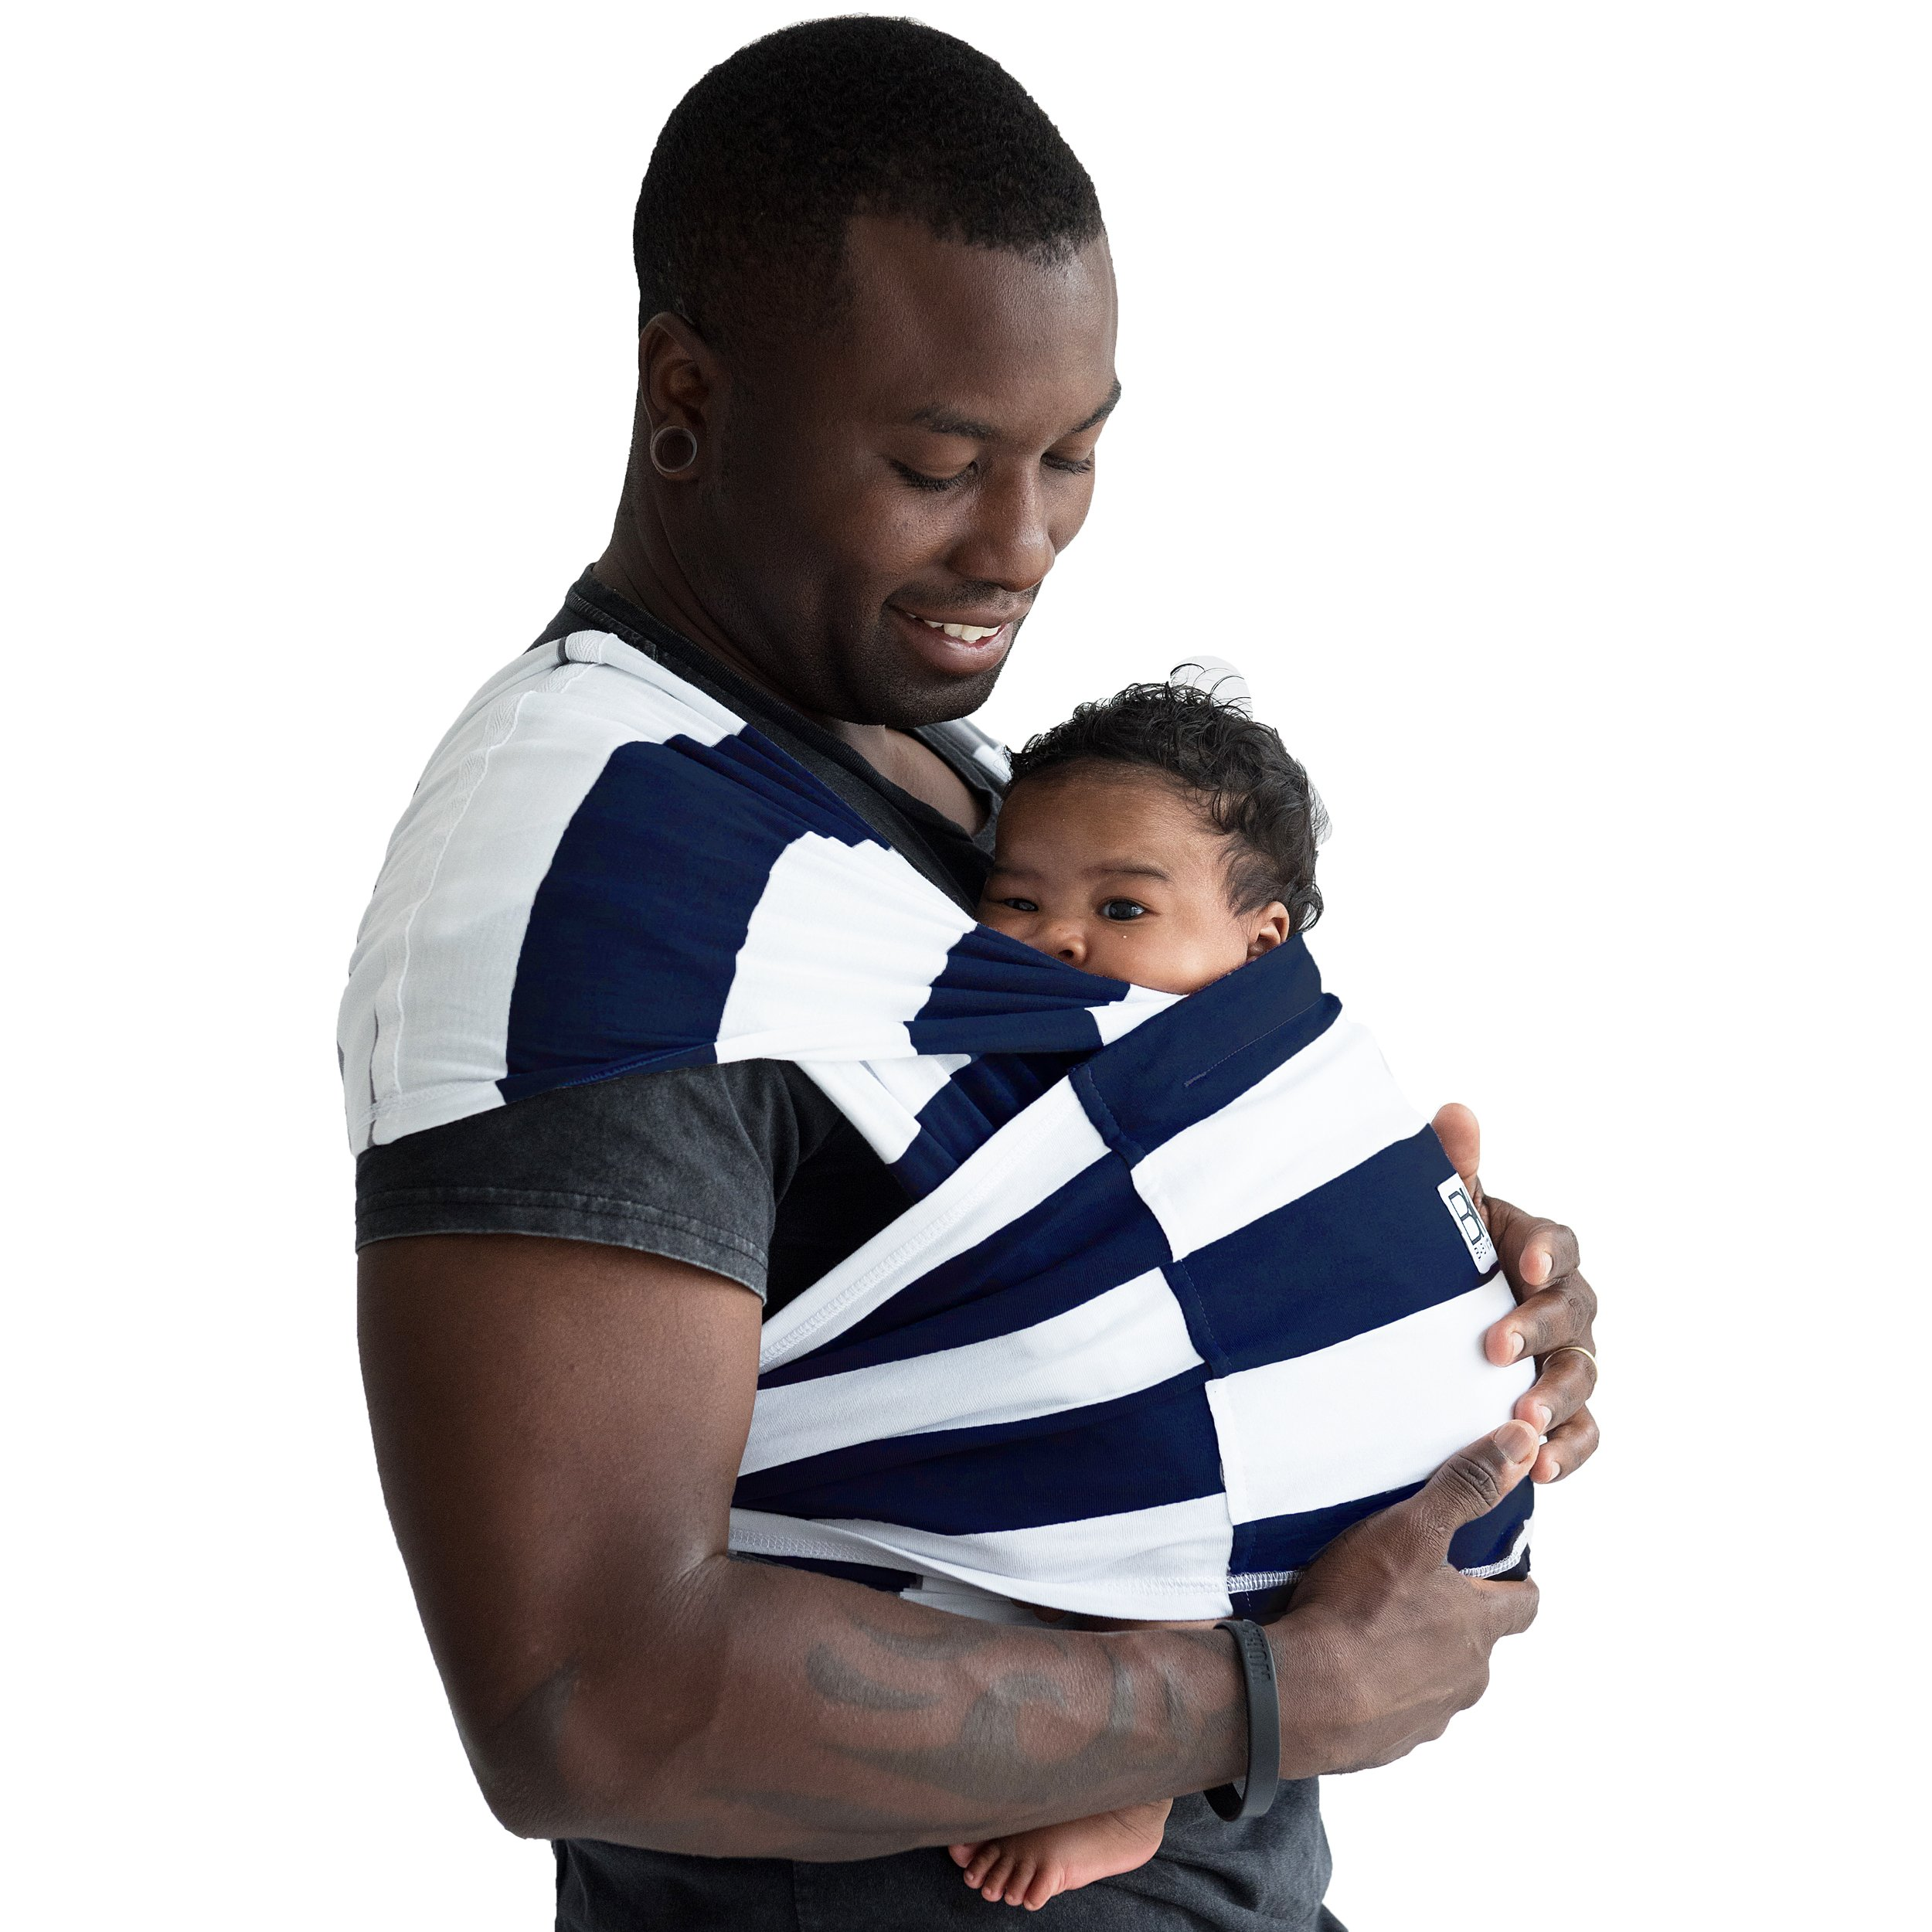 Baby K'tan Print Baby Wrap Carrier, Infant and Child Sling-Navy Stripe X-Small (W dress 2-4 / M jacket up to 36). Newborn up to 35 Pound Best for Babywearing. by Baby K'tan